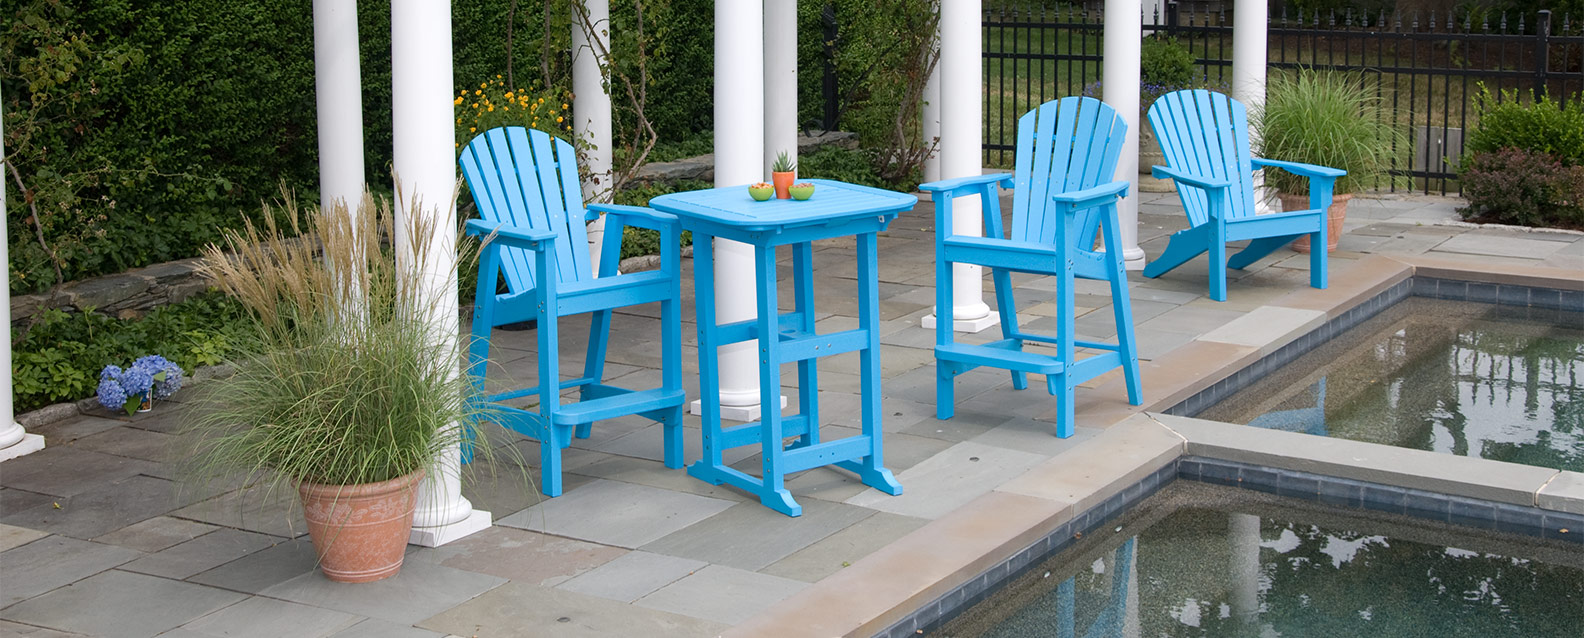 Seaside Casual Sback Adirondack Balcony Chairs With